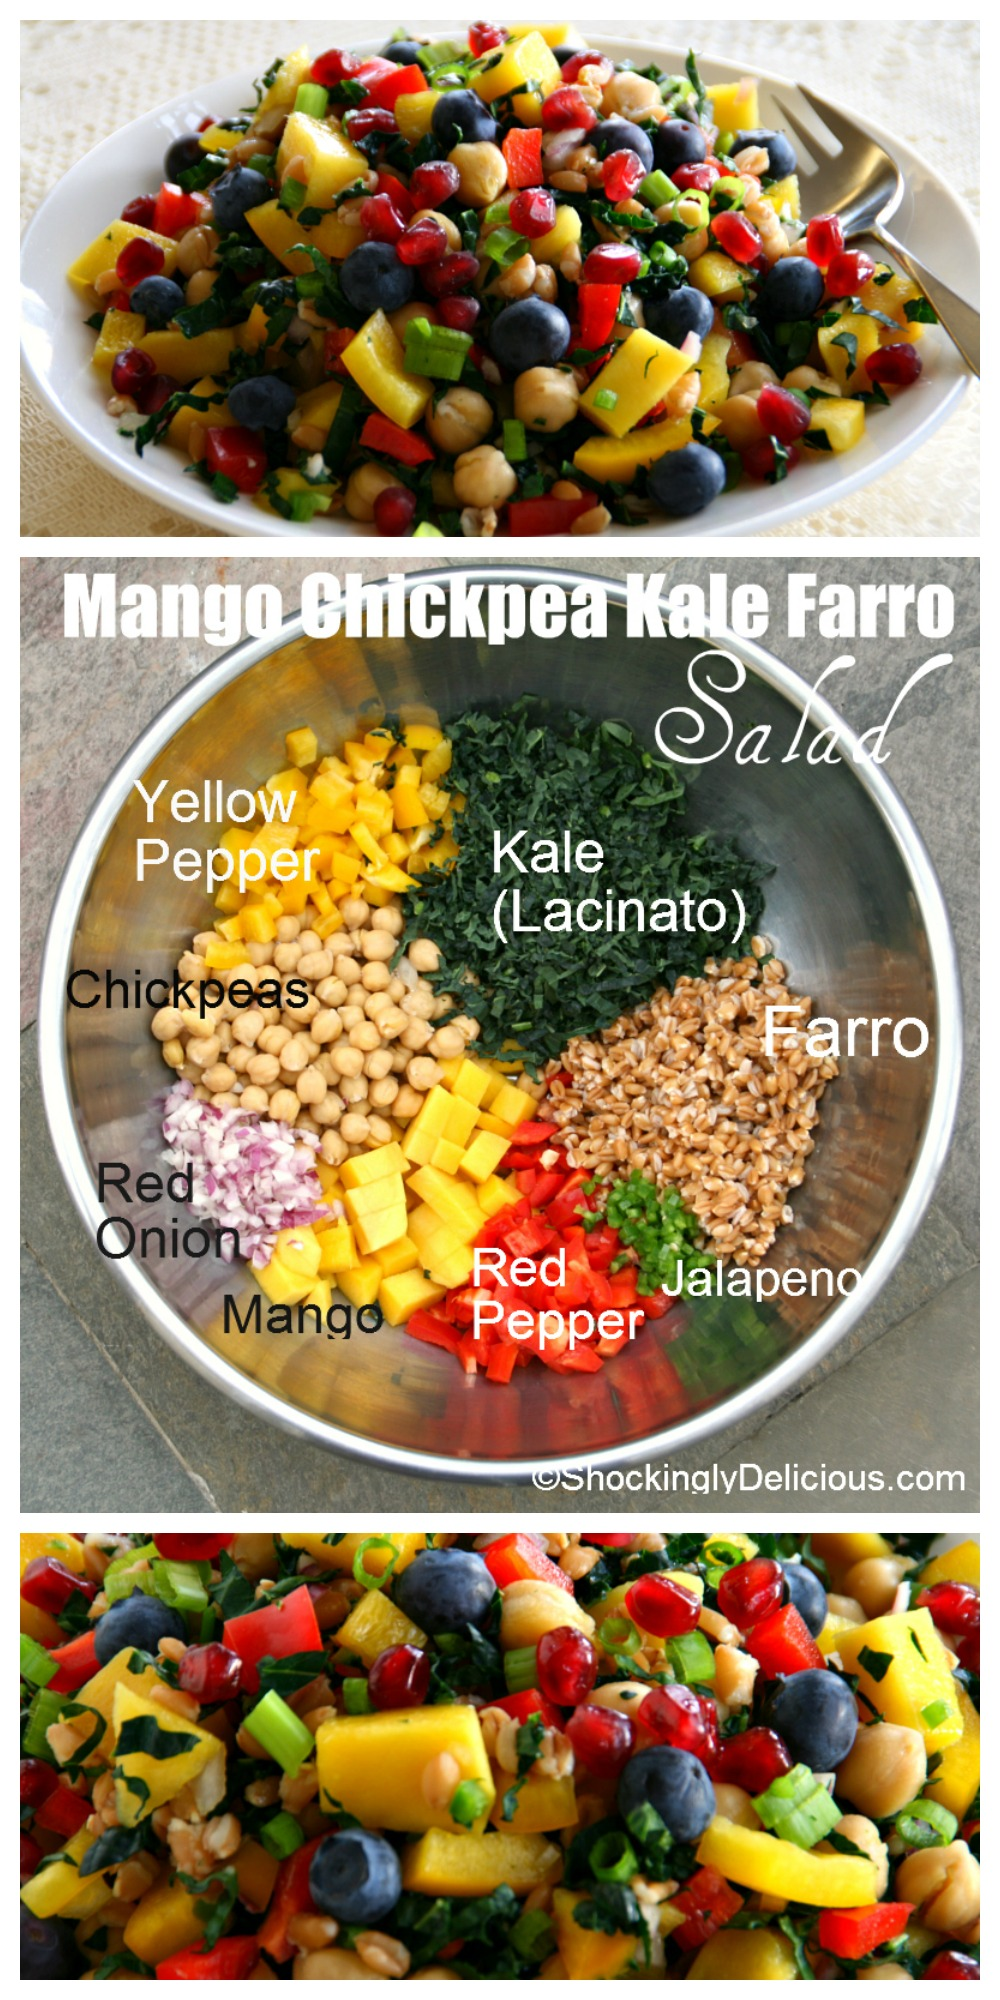 Mango Chickpea Kale Farro Salad recipe on ShockinglyDelicious.com